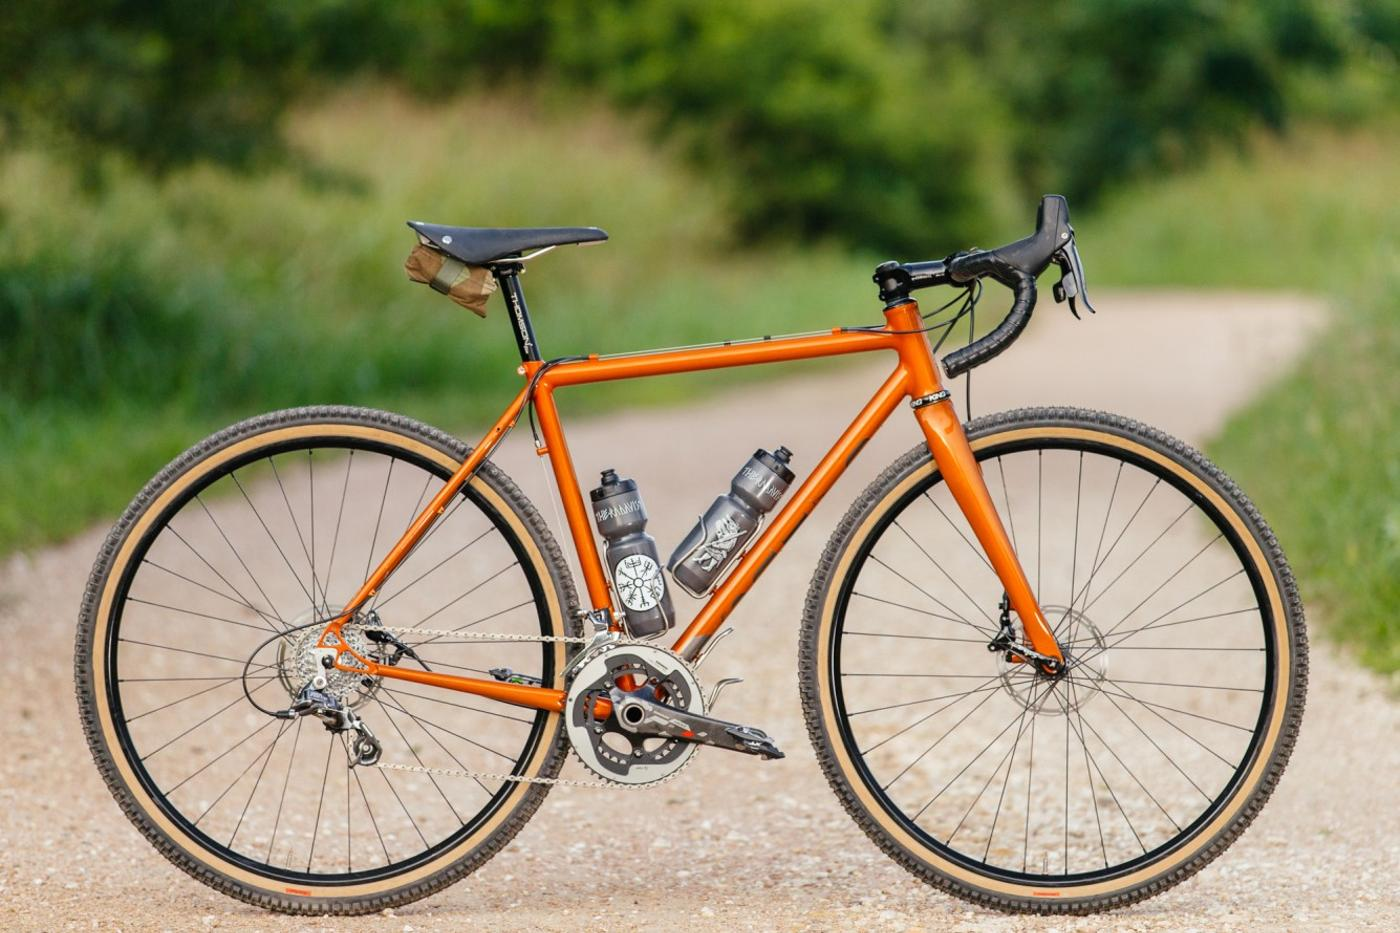 06-Tylers-Icarus-All-Road-Disc-23-1335x890